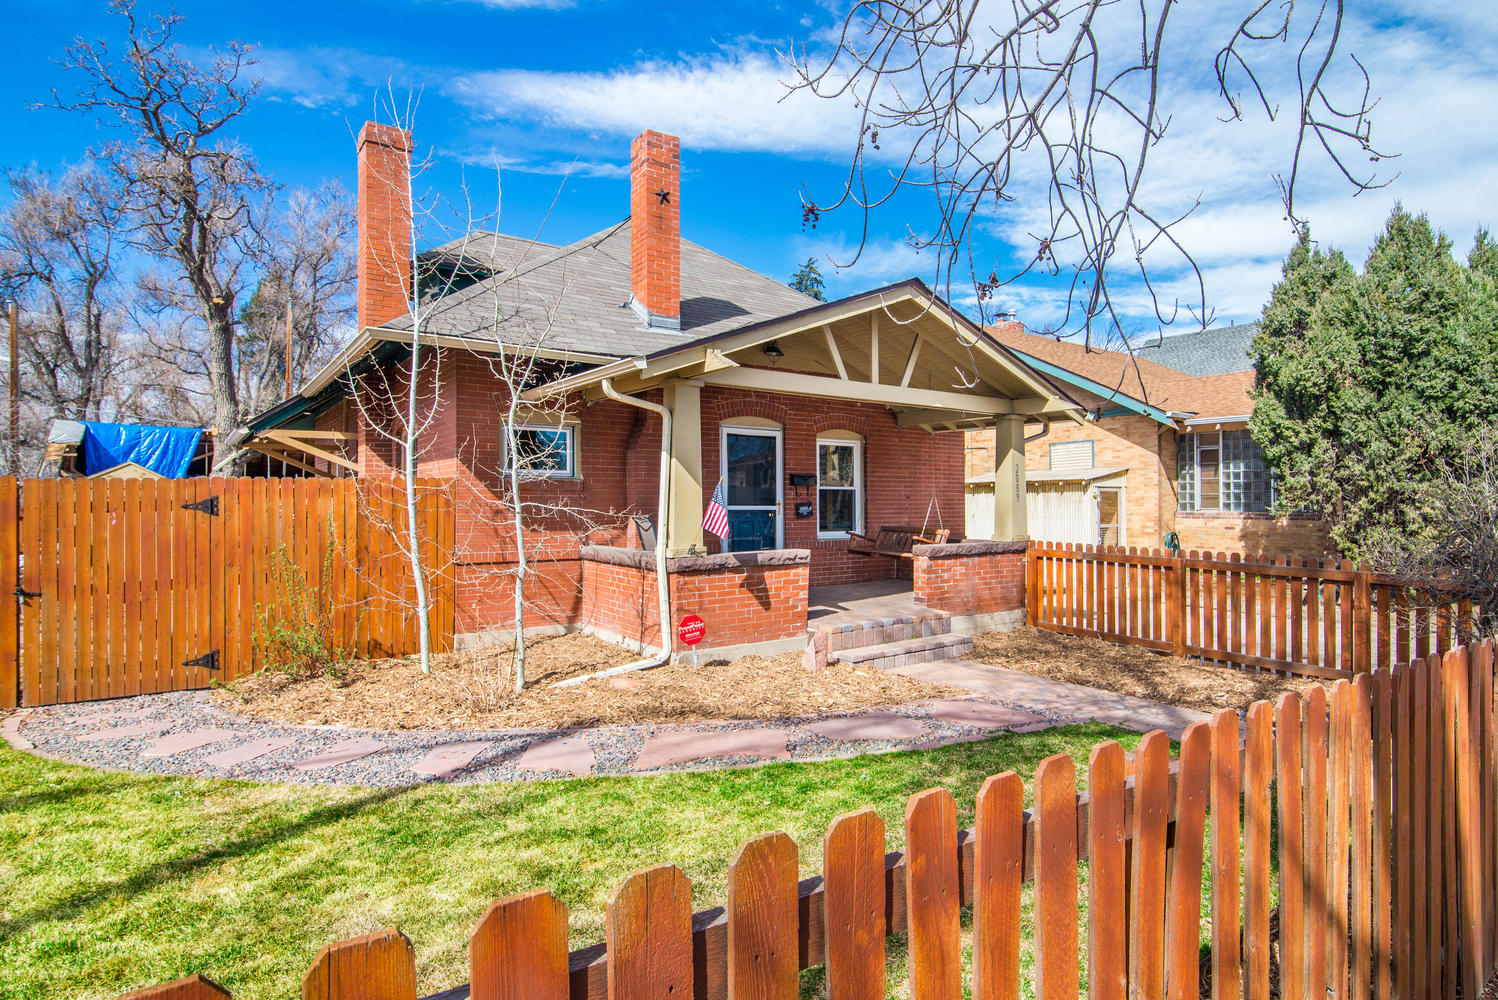 Single Family Home for Sale at Amazing Bungalow in sought after Platte Park Neighborhood! 2089 South Pearl Street Denver, Colorado, 80210 United States